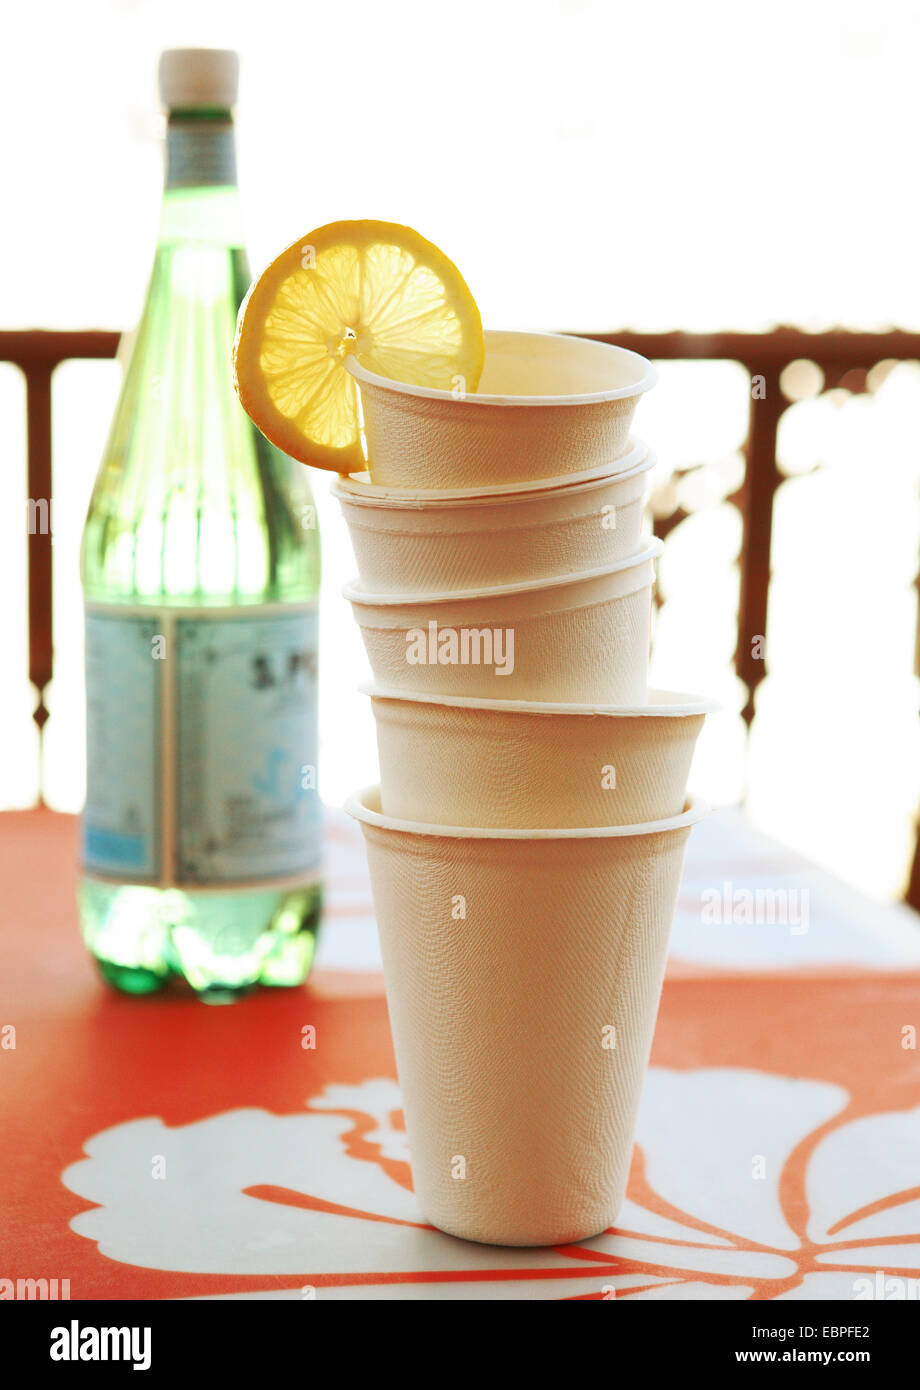 stacked disposable cups with a lemon wedge with a bottle of water on a orange place mat natural light - Stock Image